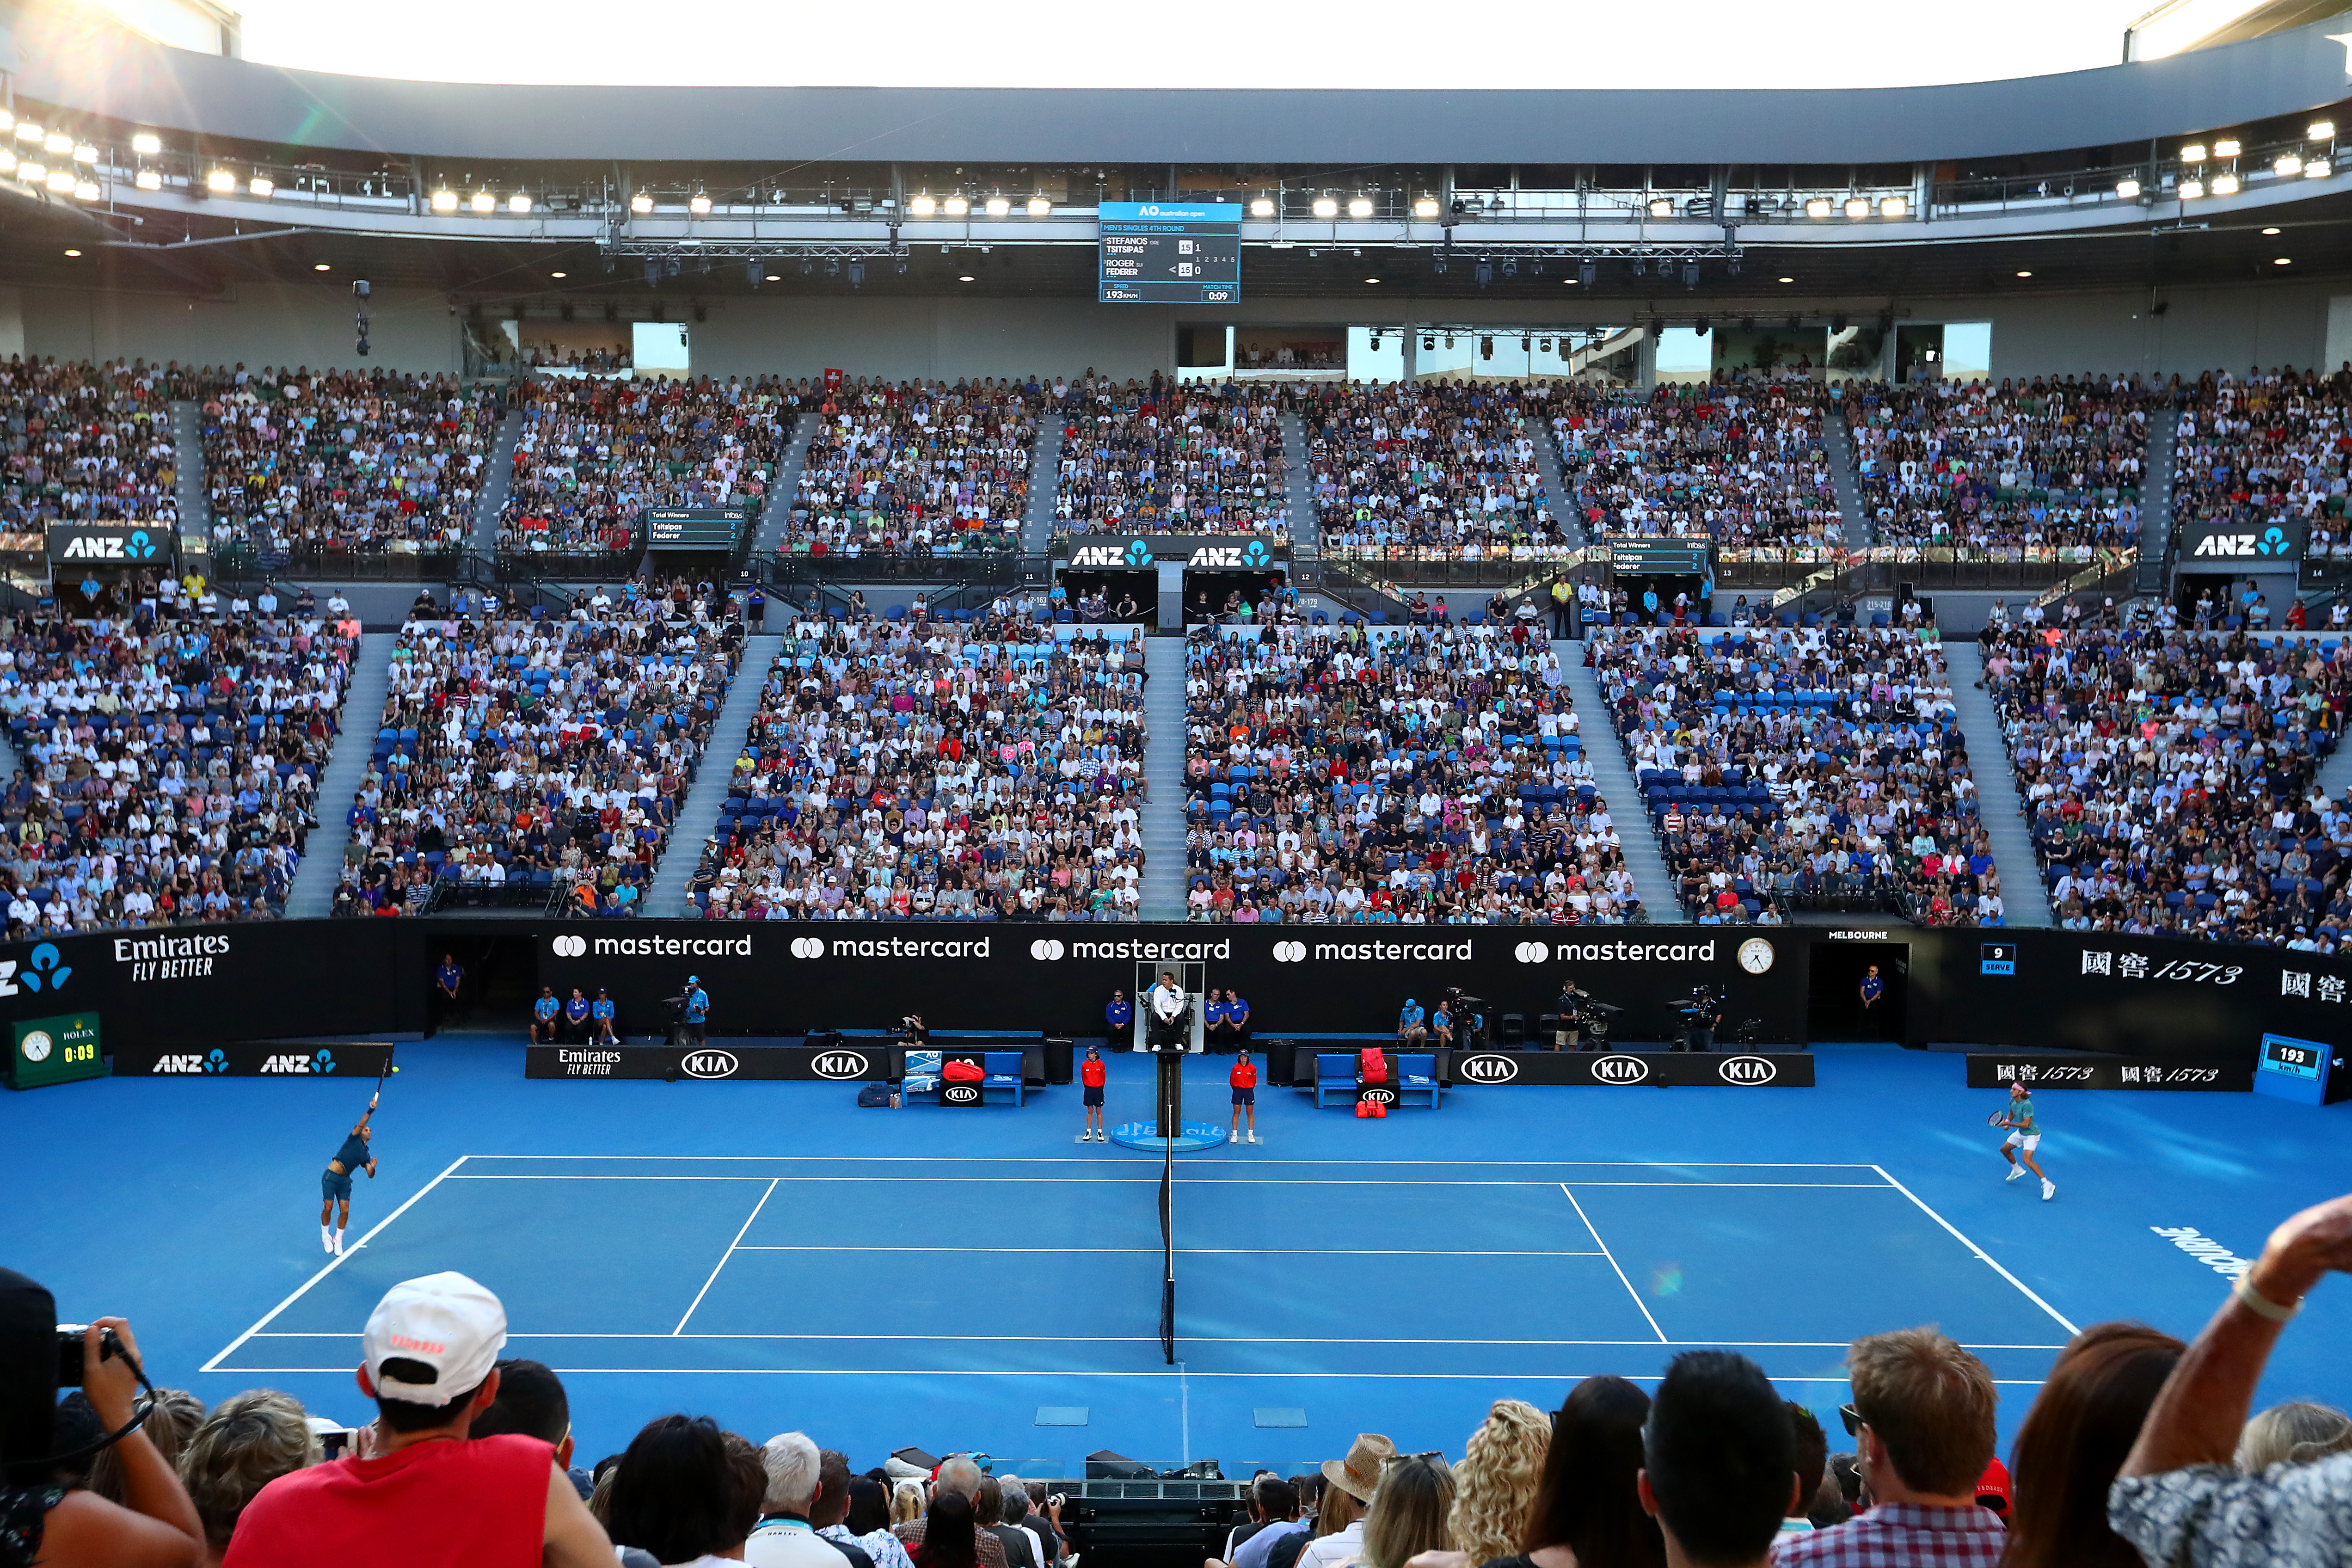 Record 71 Million In Prize Money For Australian Open 2020